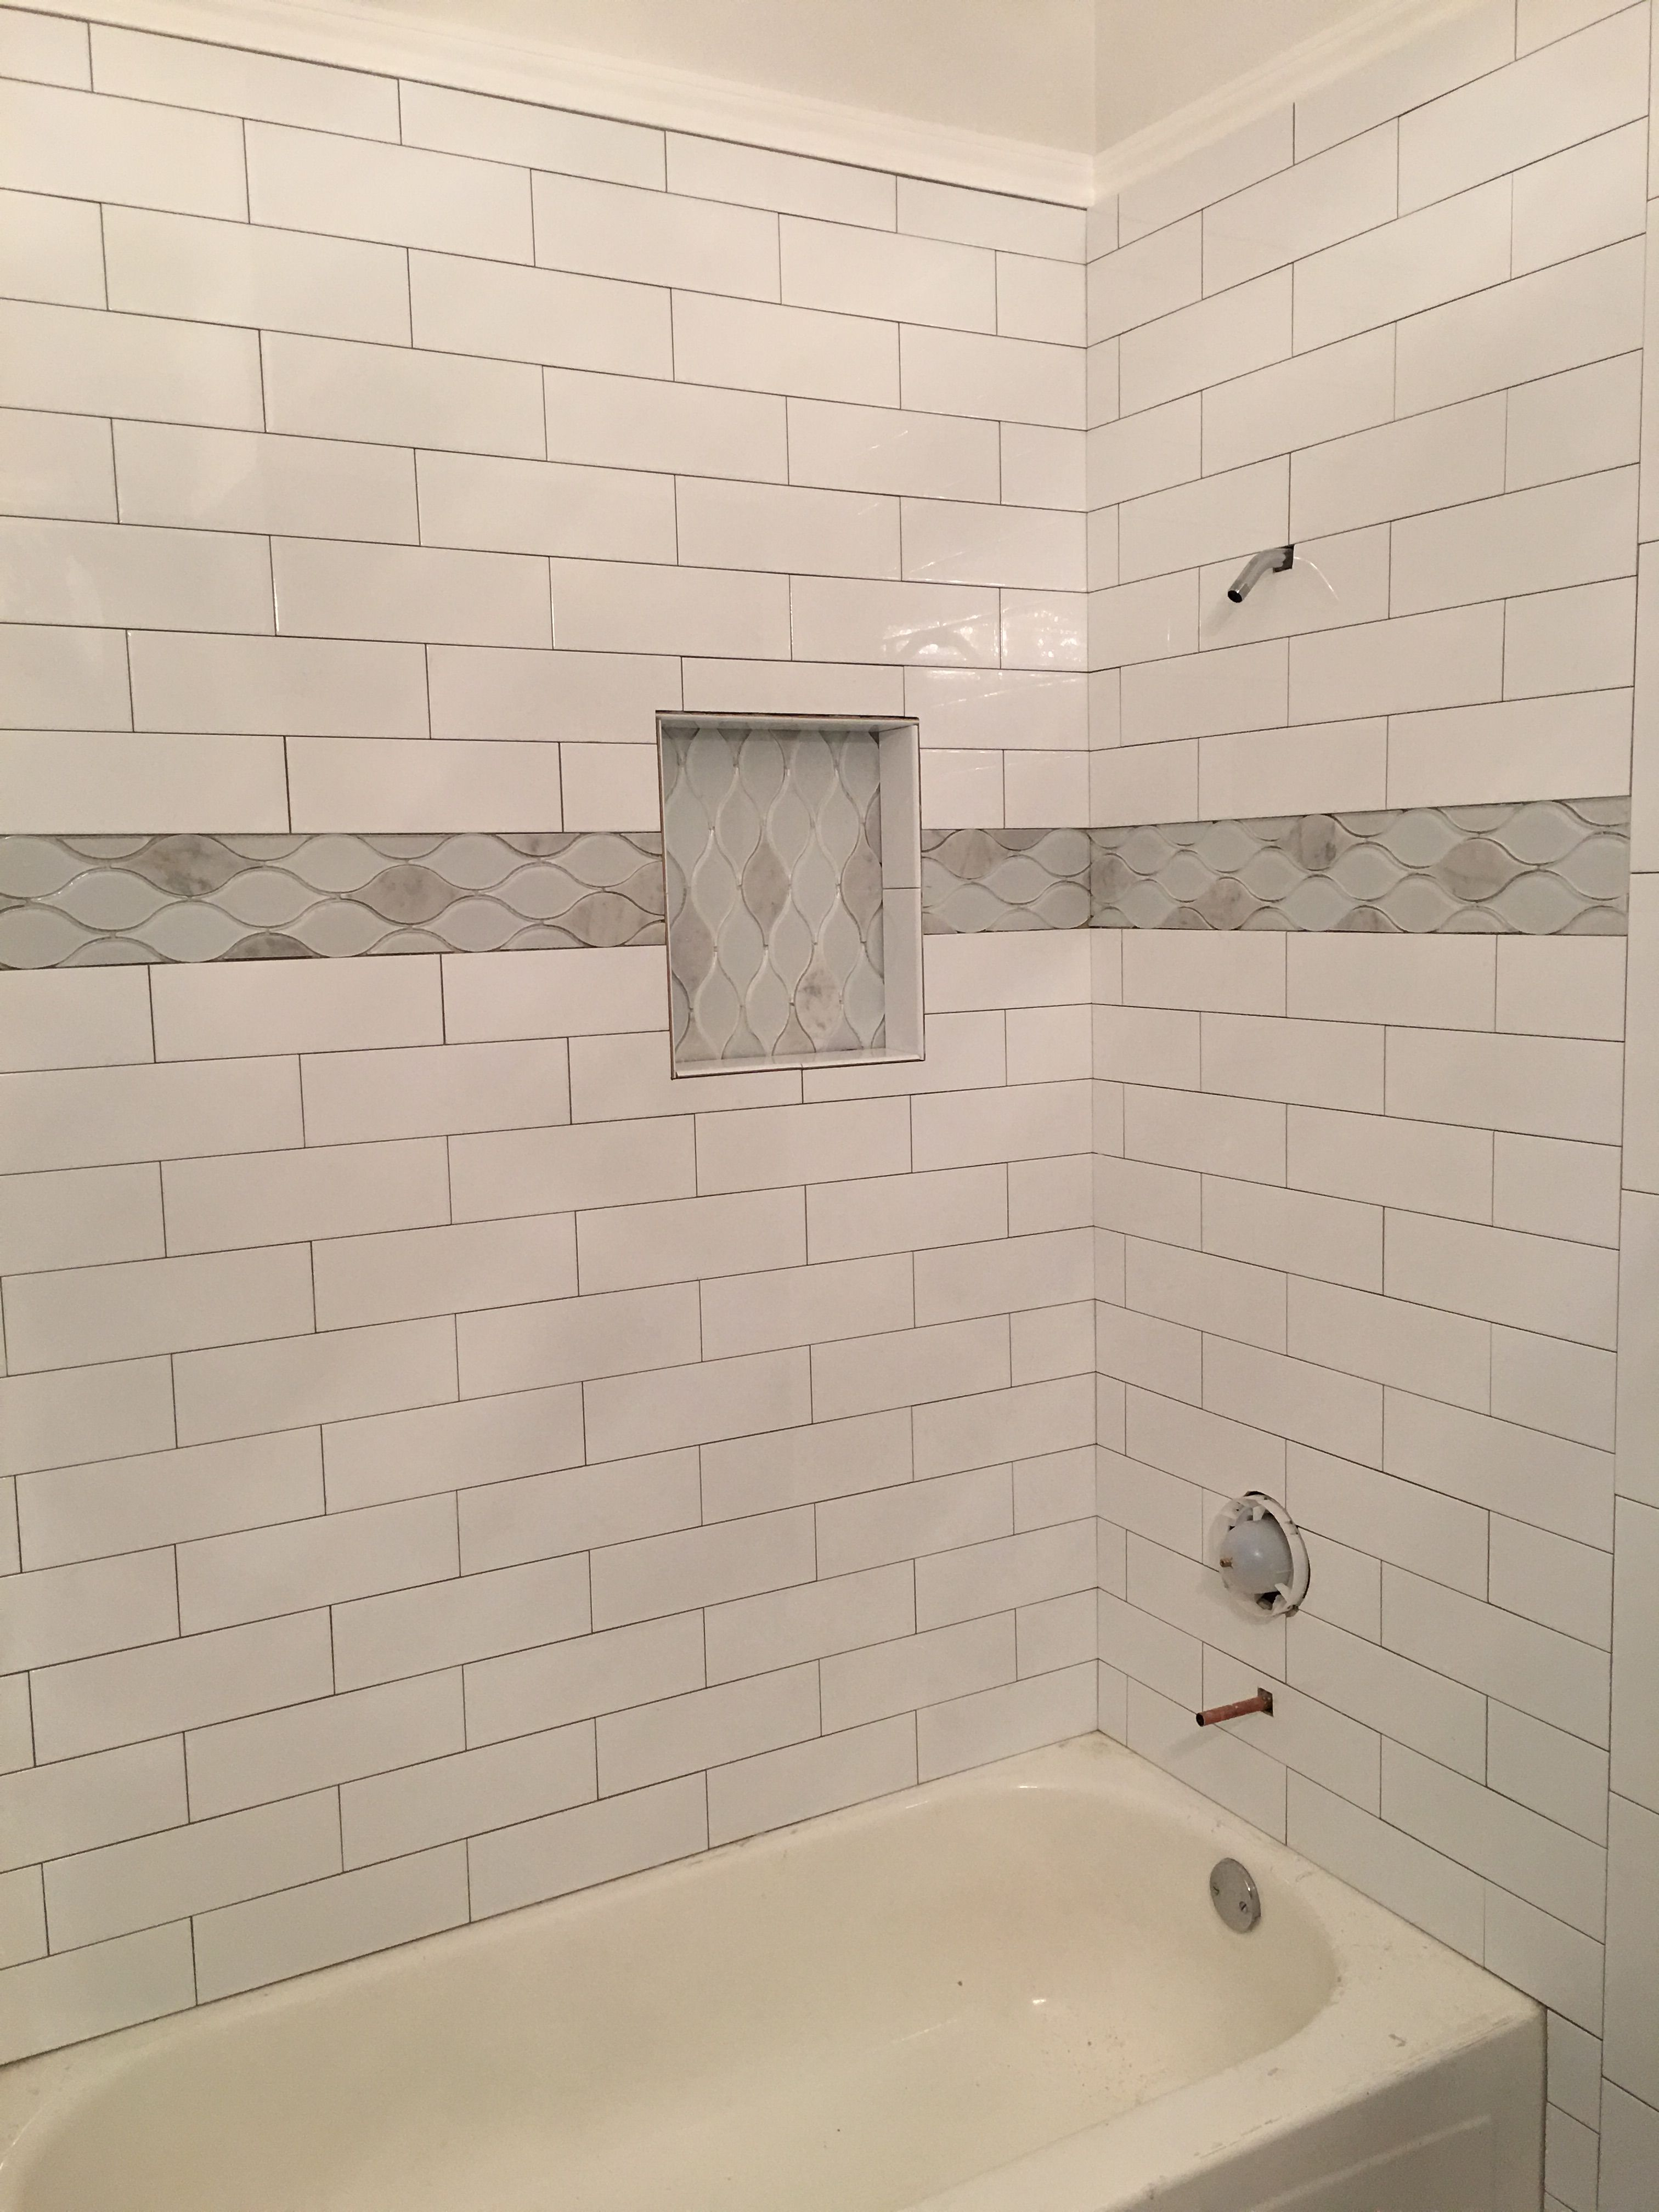 4x16 subway tile tub to shower